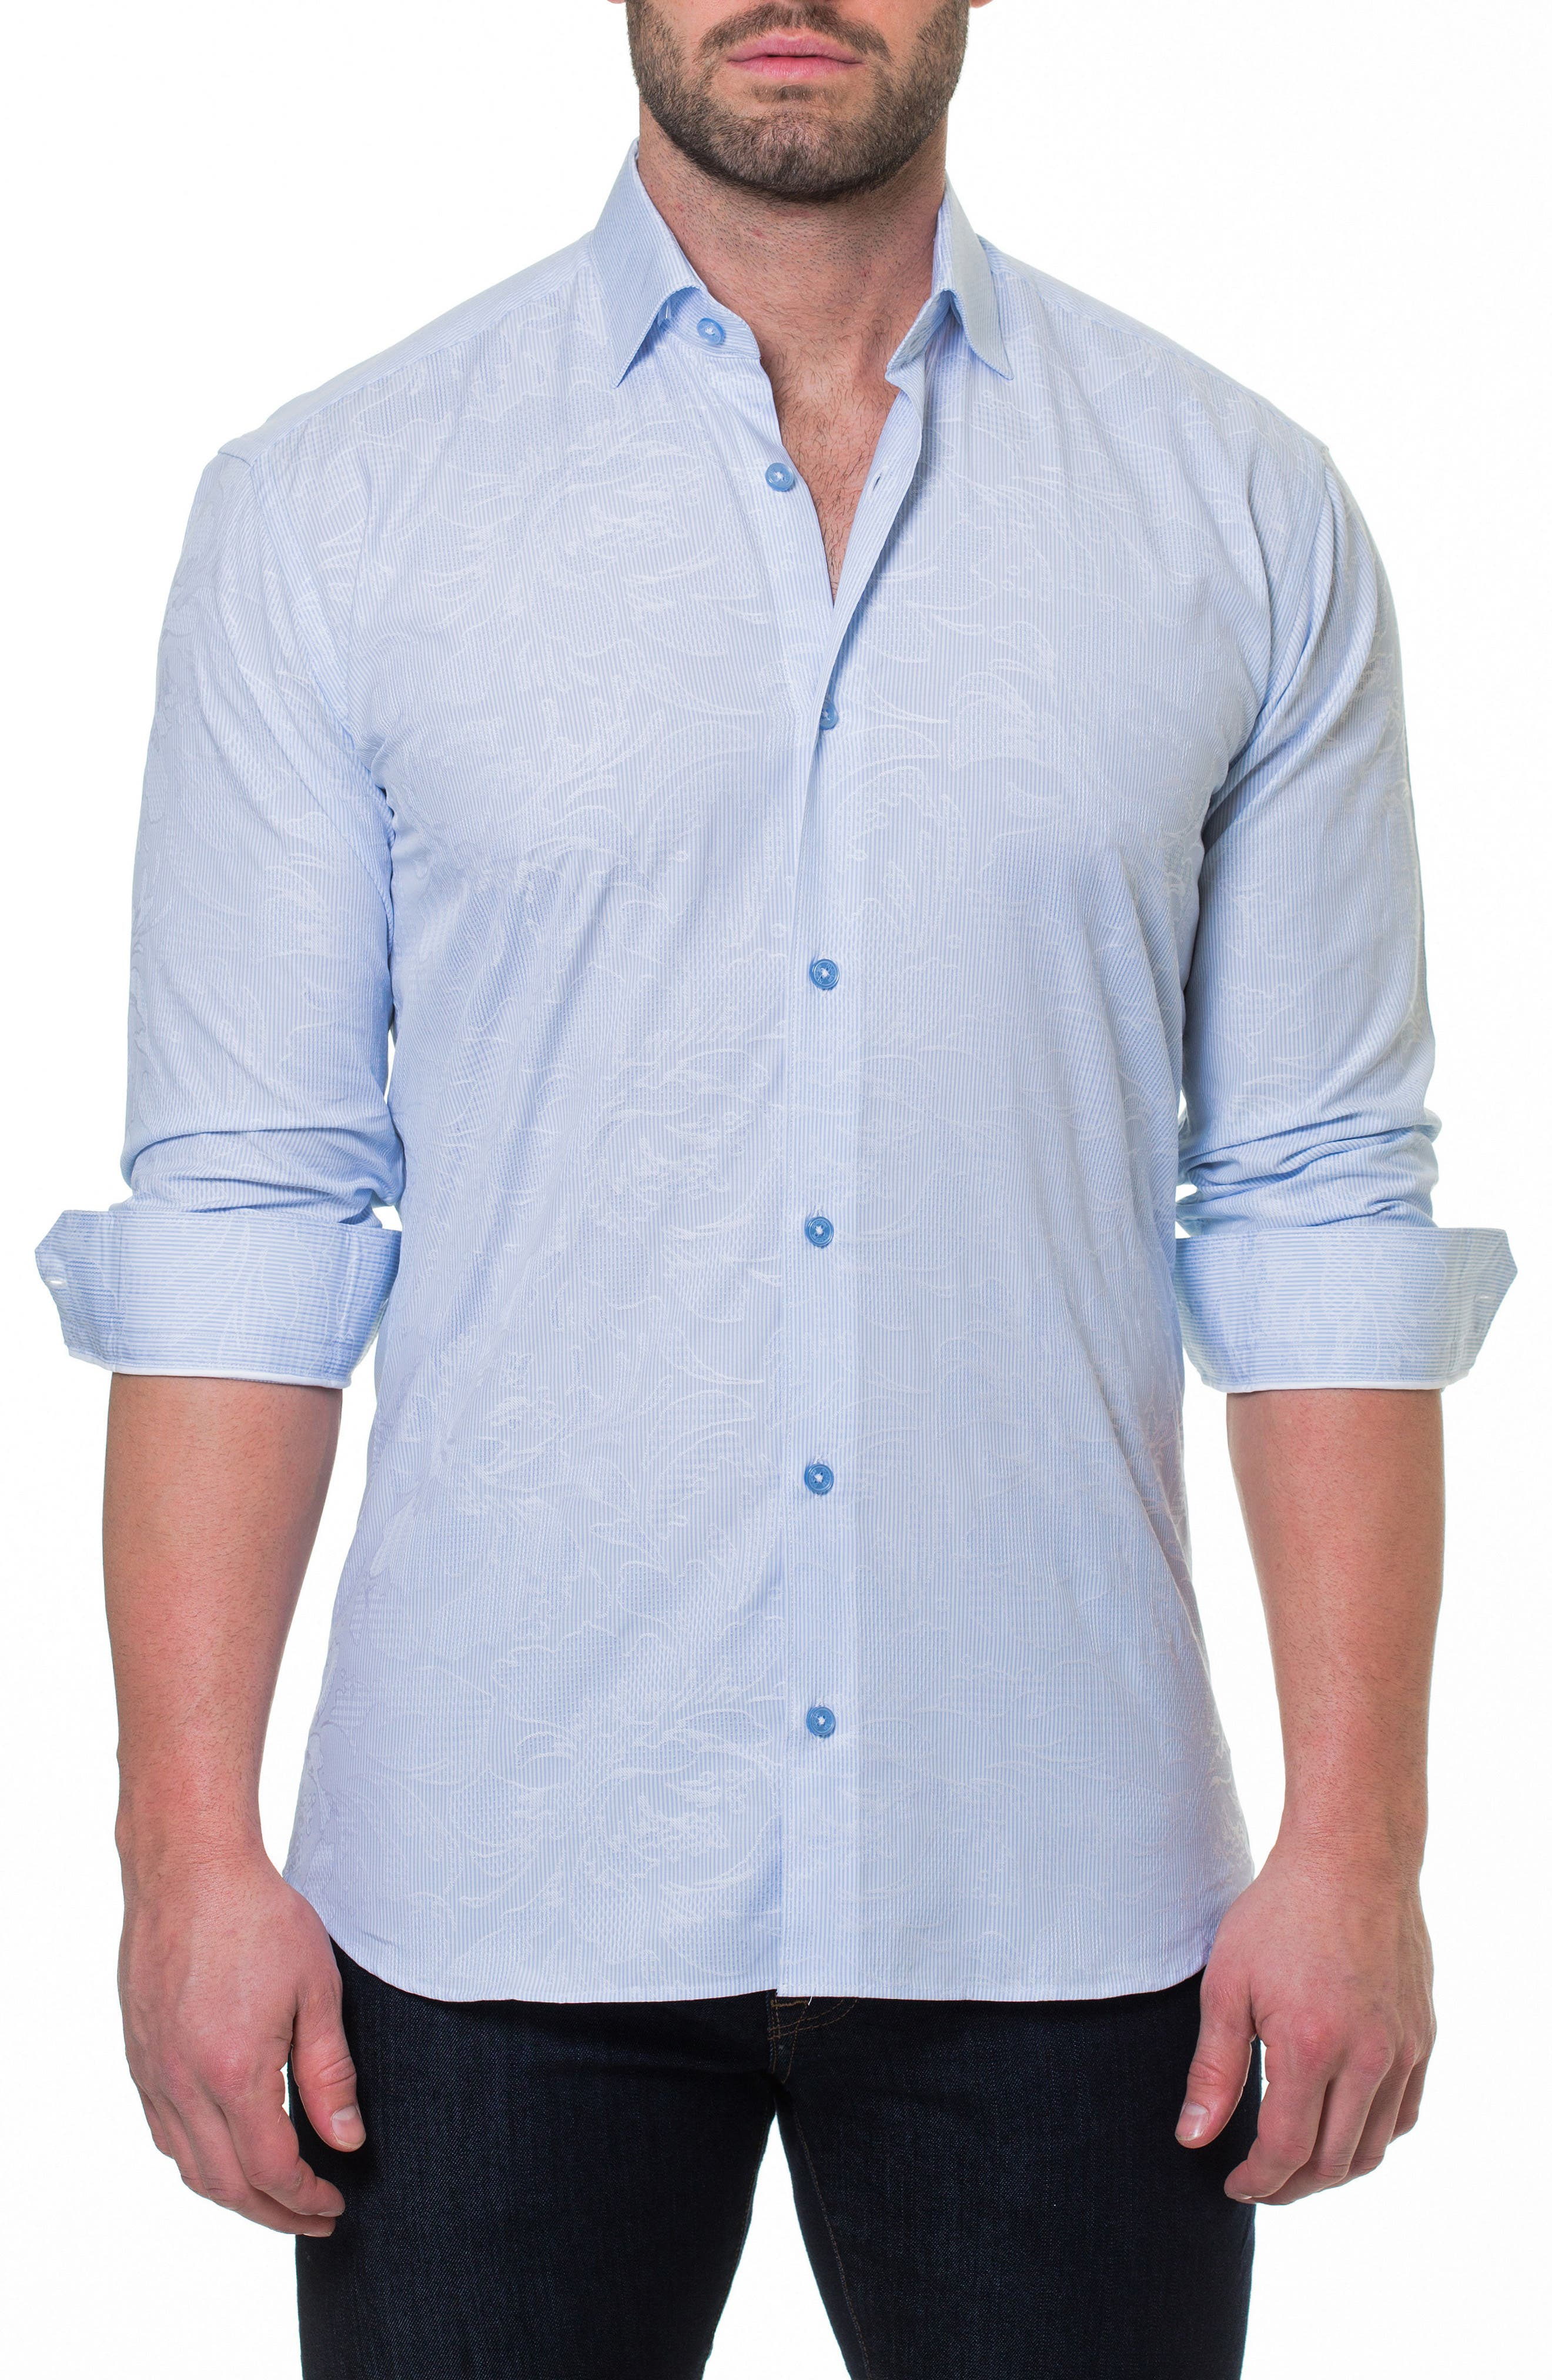 Luxor Flow Sport Shirt,                             Main thumbnail 1, color,                             420